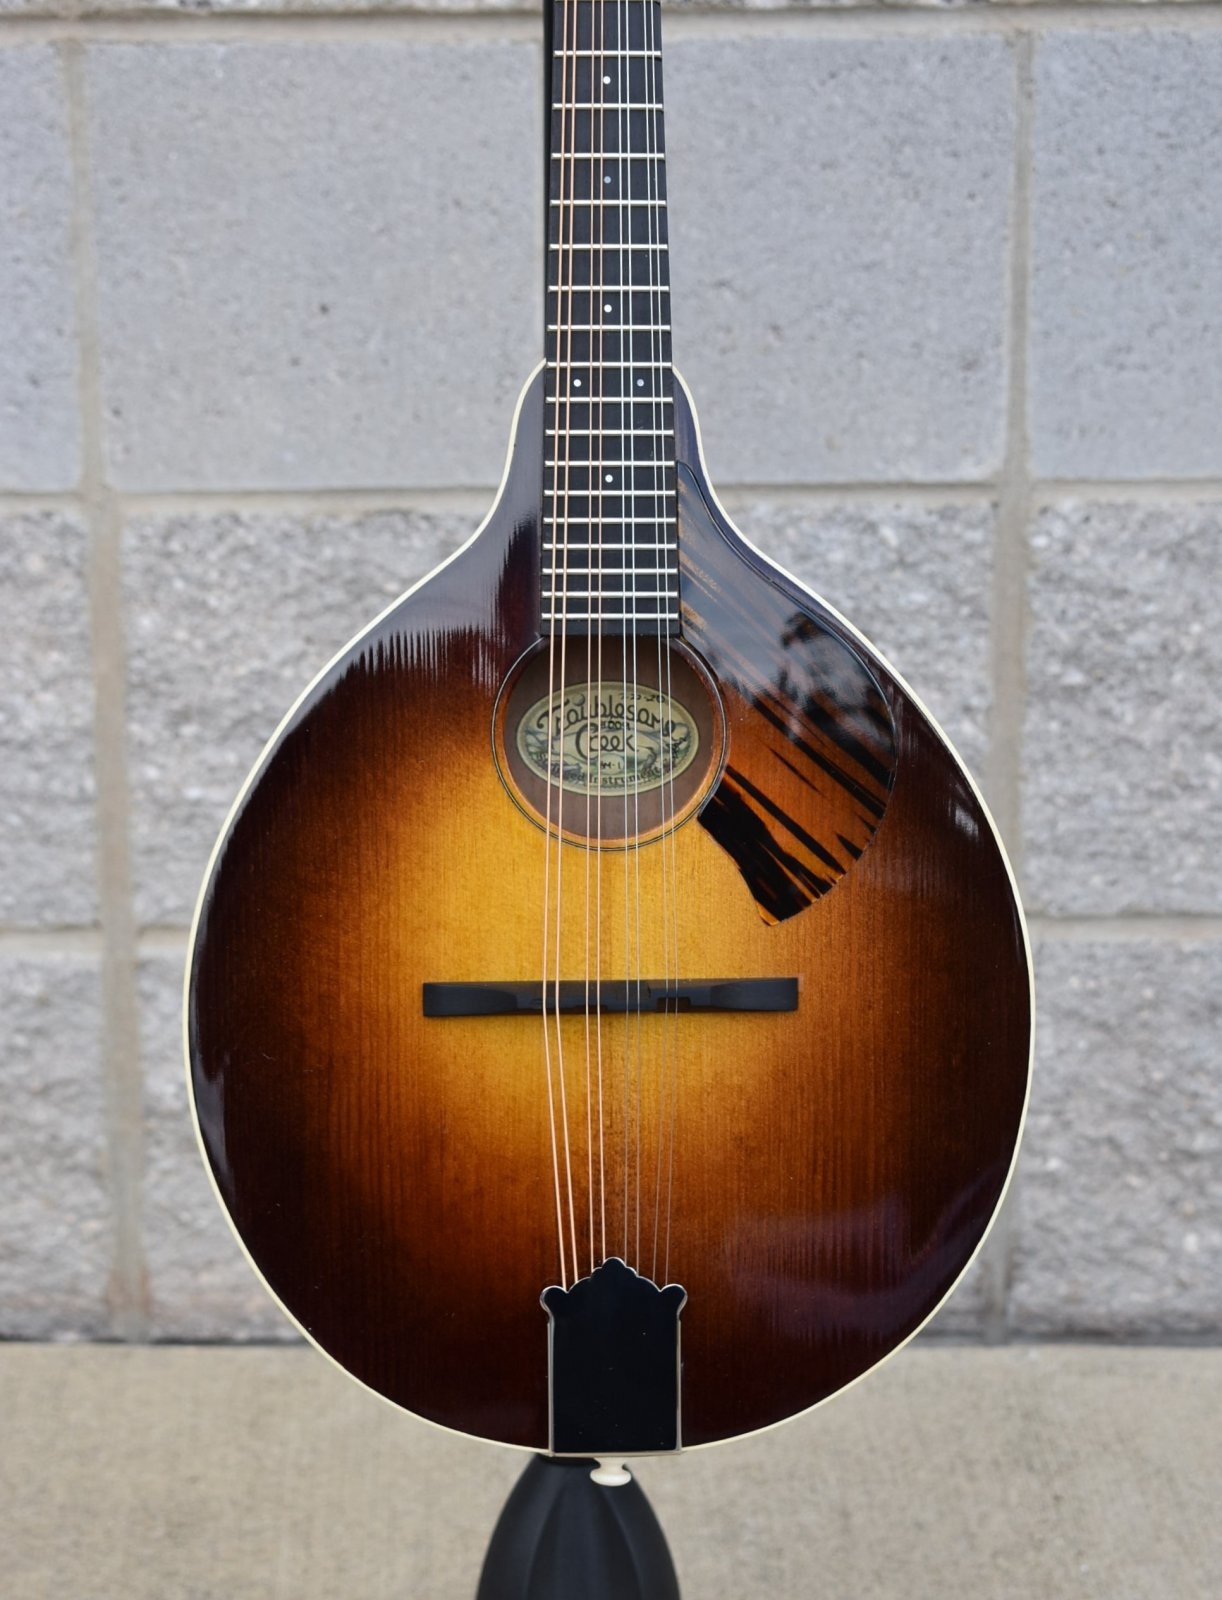 Troublesome Creek HM-1SB Honeybee Mandolin